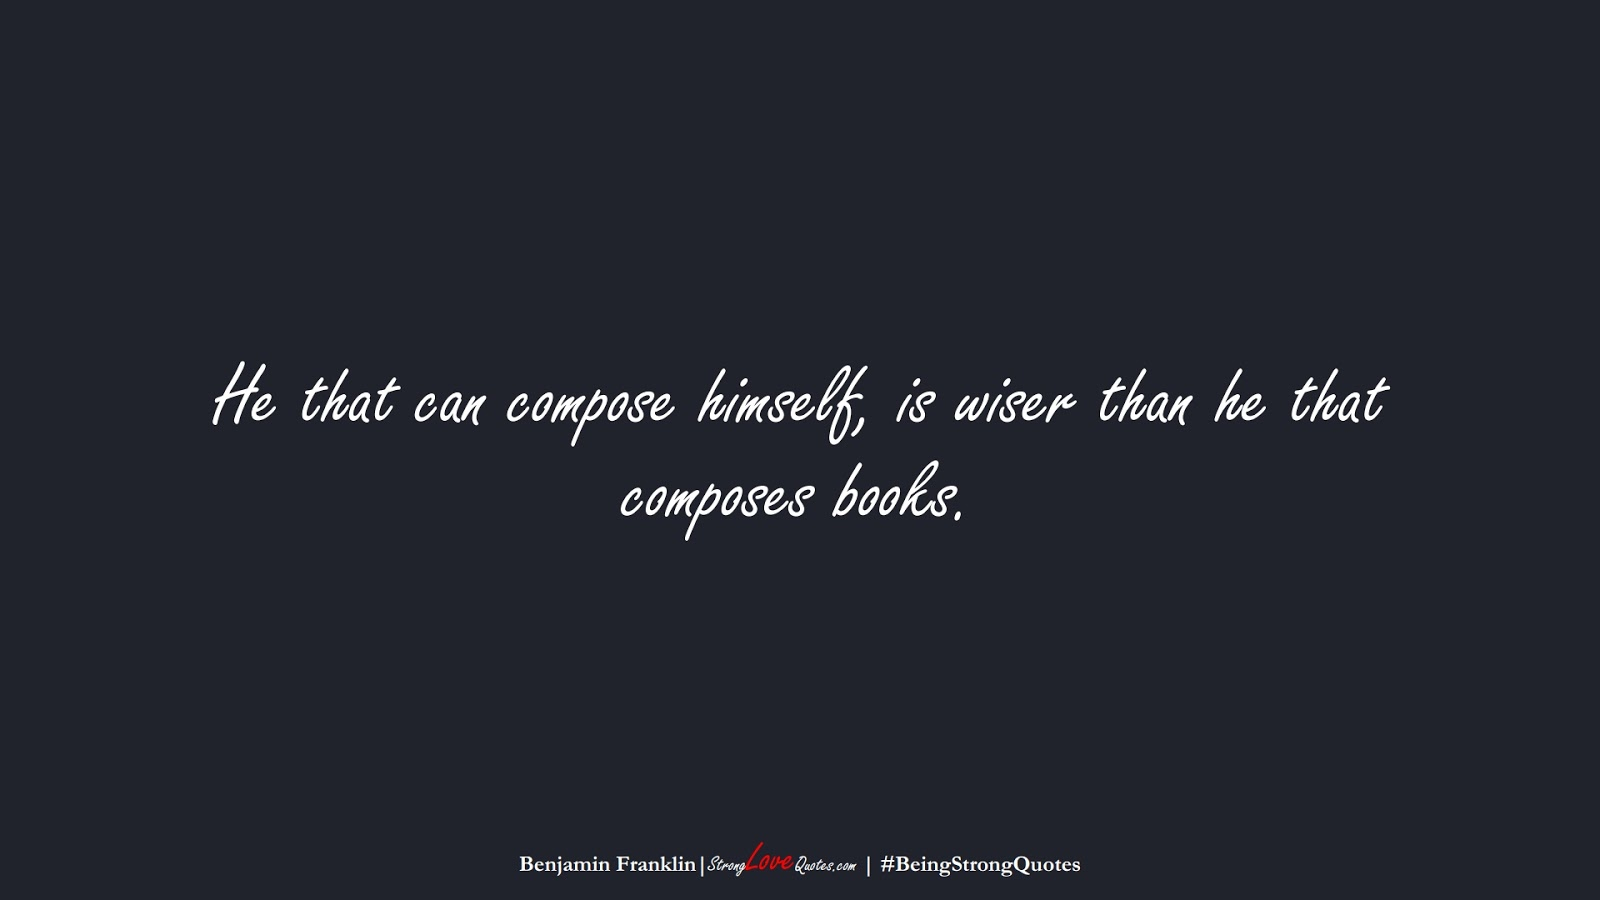 He that can compose himself, is wiser than he that composes books. (Benjamin Franklin);  #BeingStrongQuotes